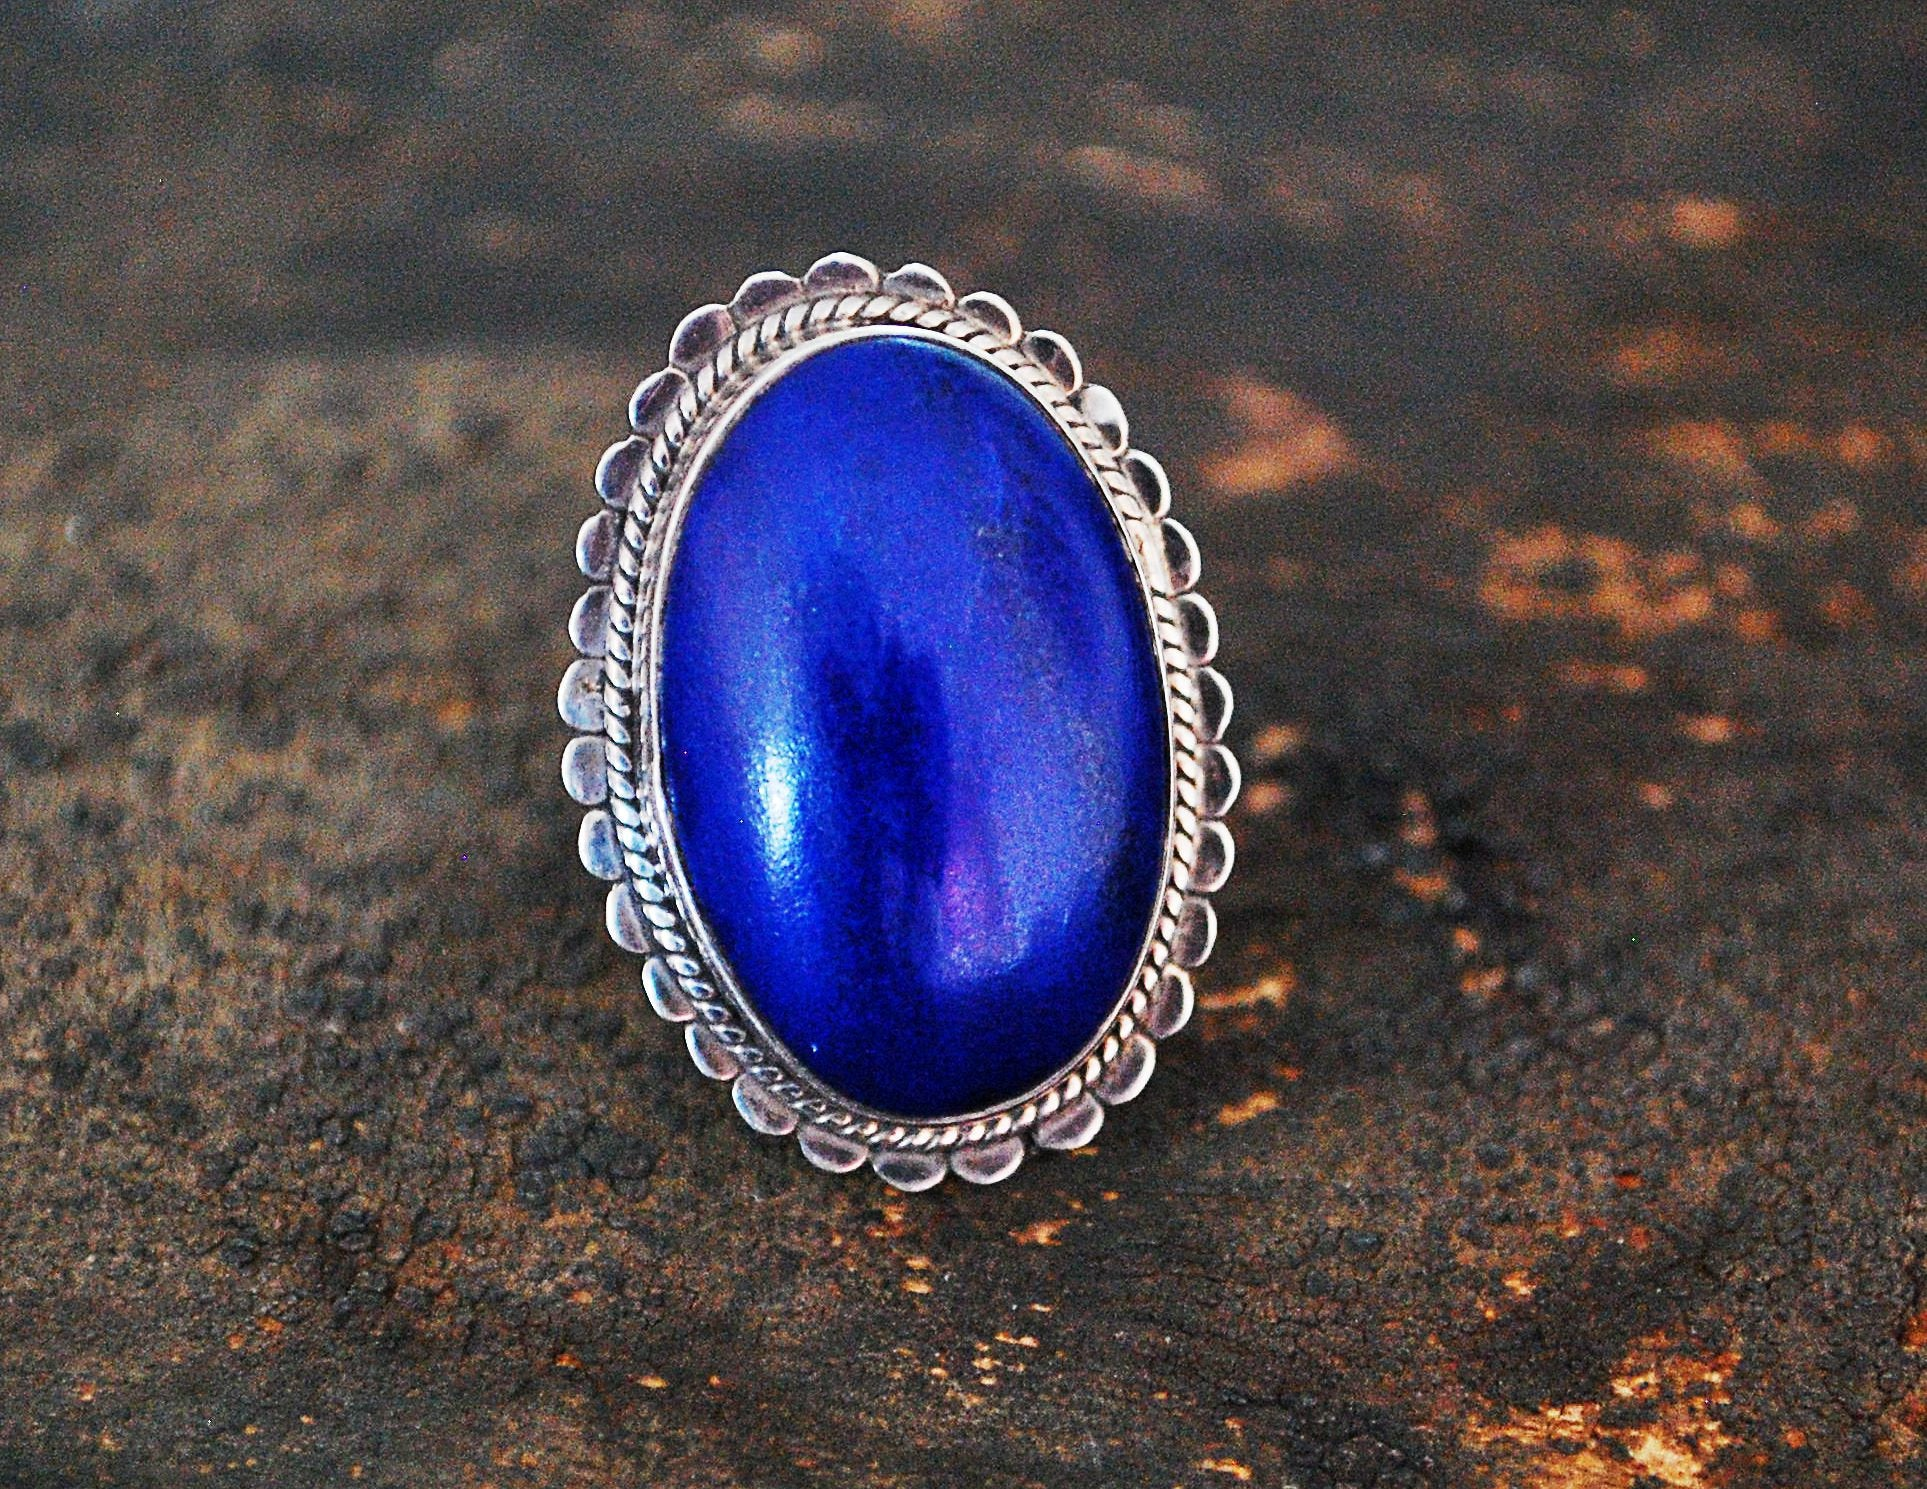 Ethnic Lapis Lazuli Ring from India - Size 6 - Indian Jewelry - India Ring - Lapis Lazuli Ring - Ethnic Ring